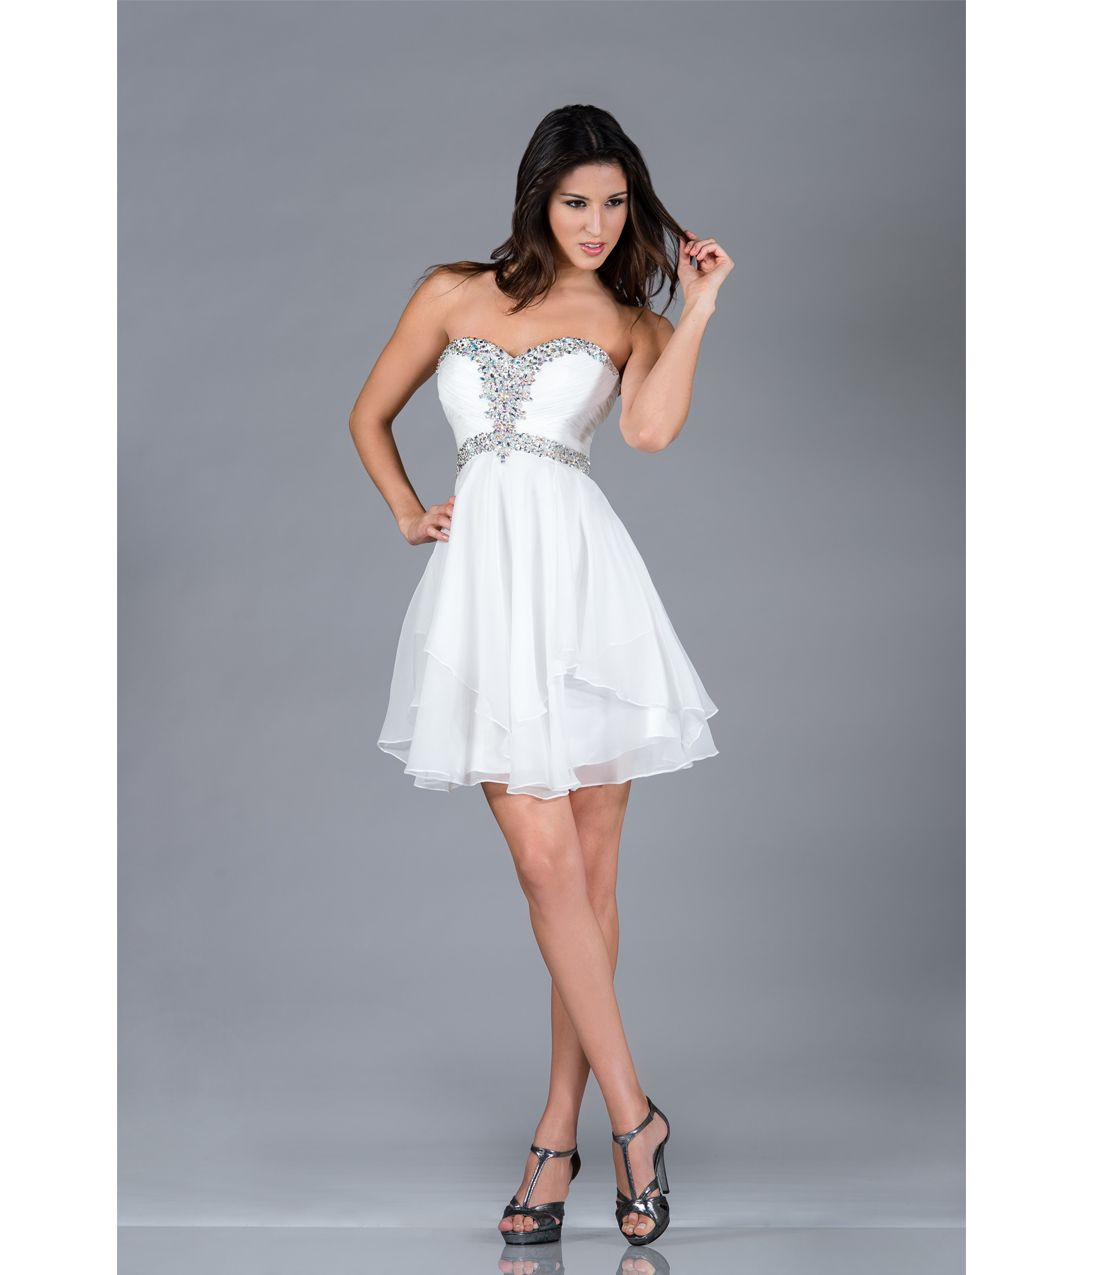 2013 Prom Dresses - Off-White Strapless Short Chiffon Prom Dress ...